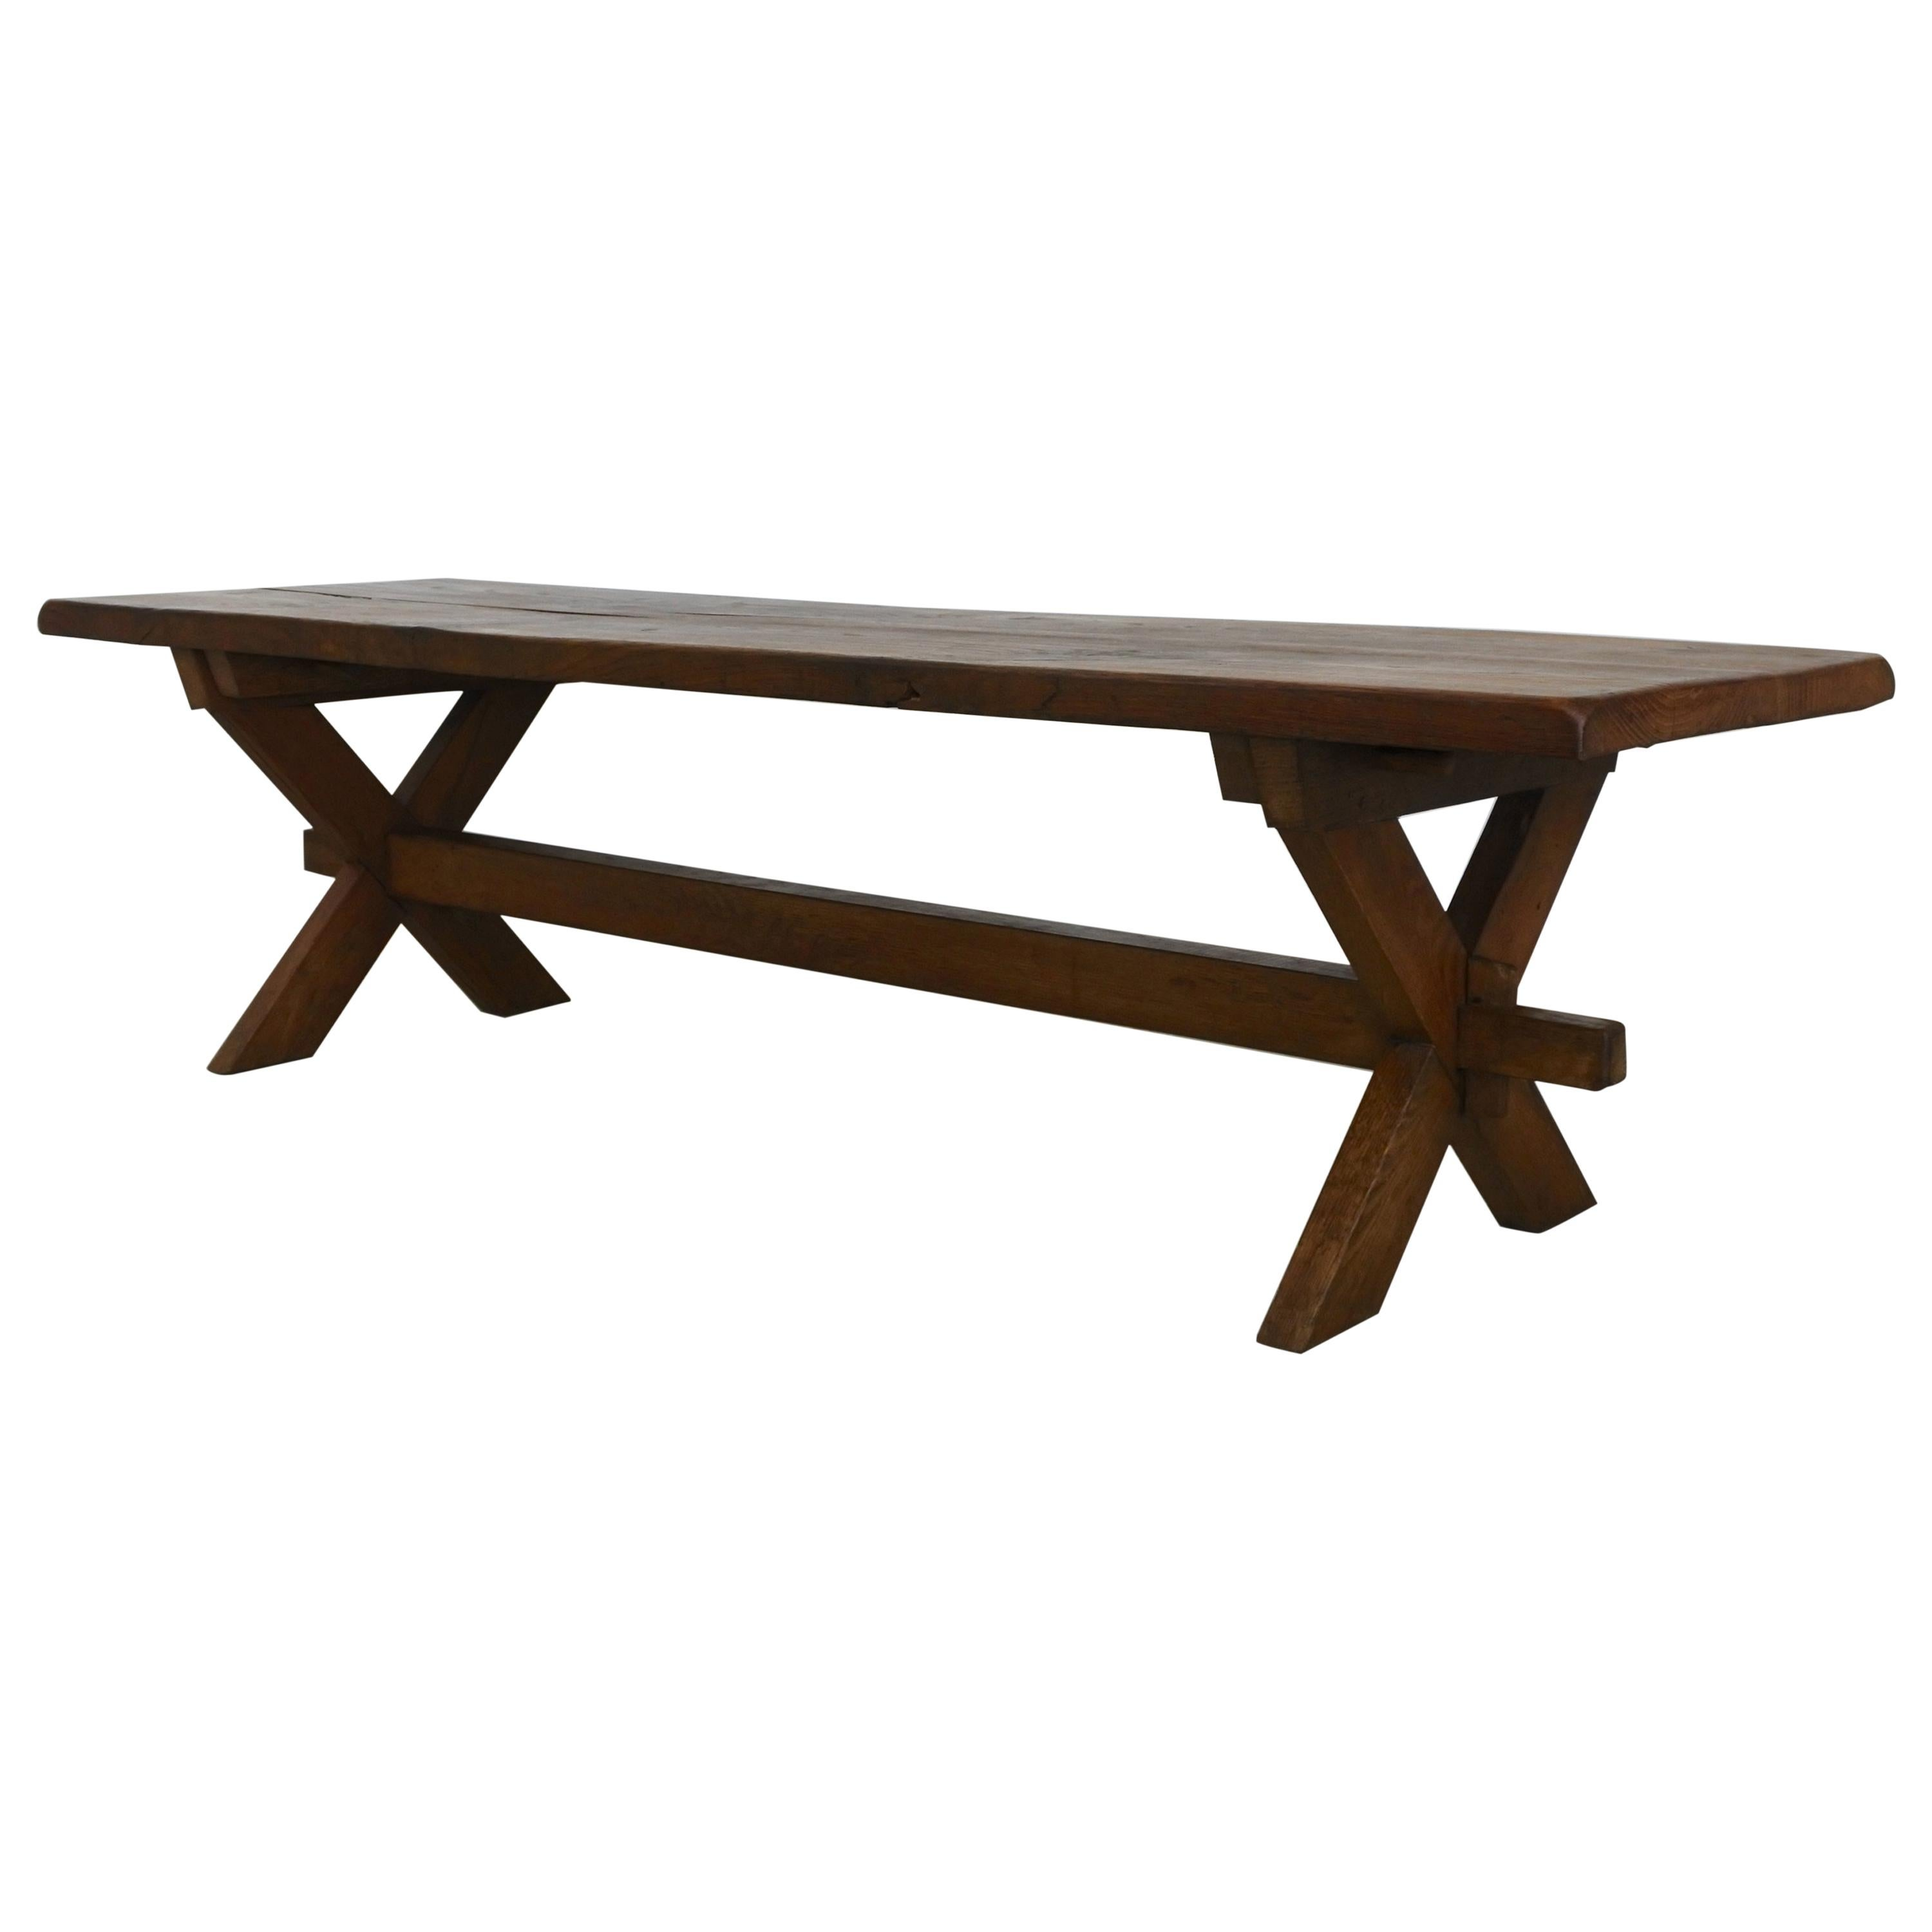 Large Oak Wood Coffee Table in the Style of Jean Michel Frank, France, 1940s